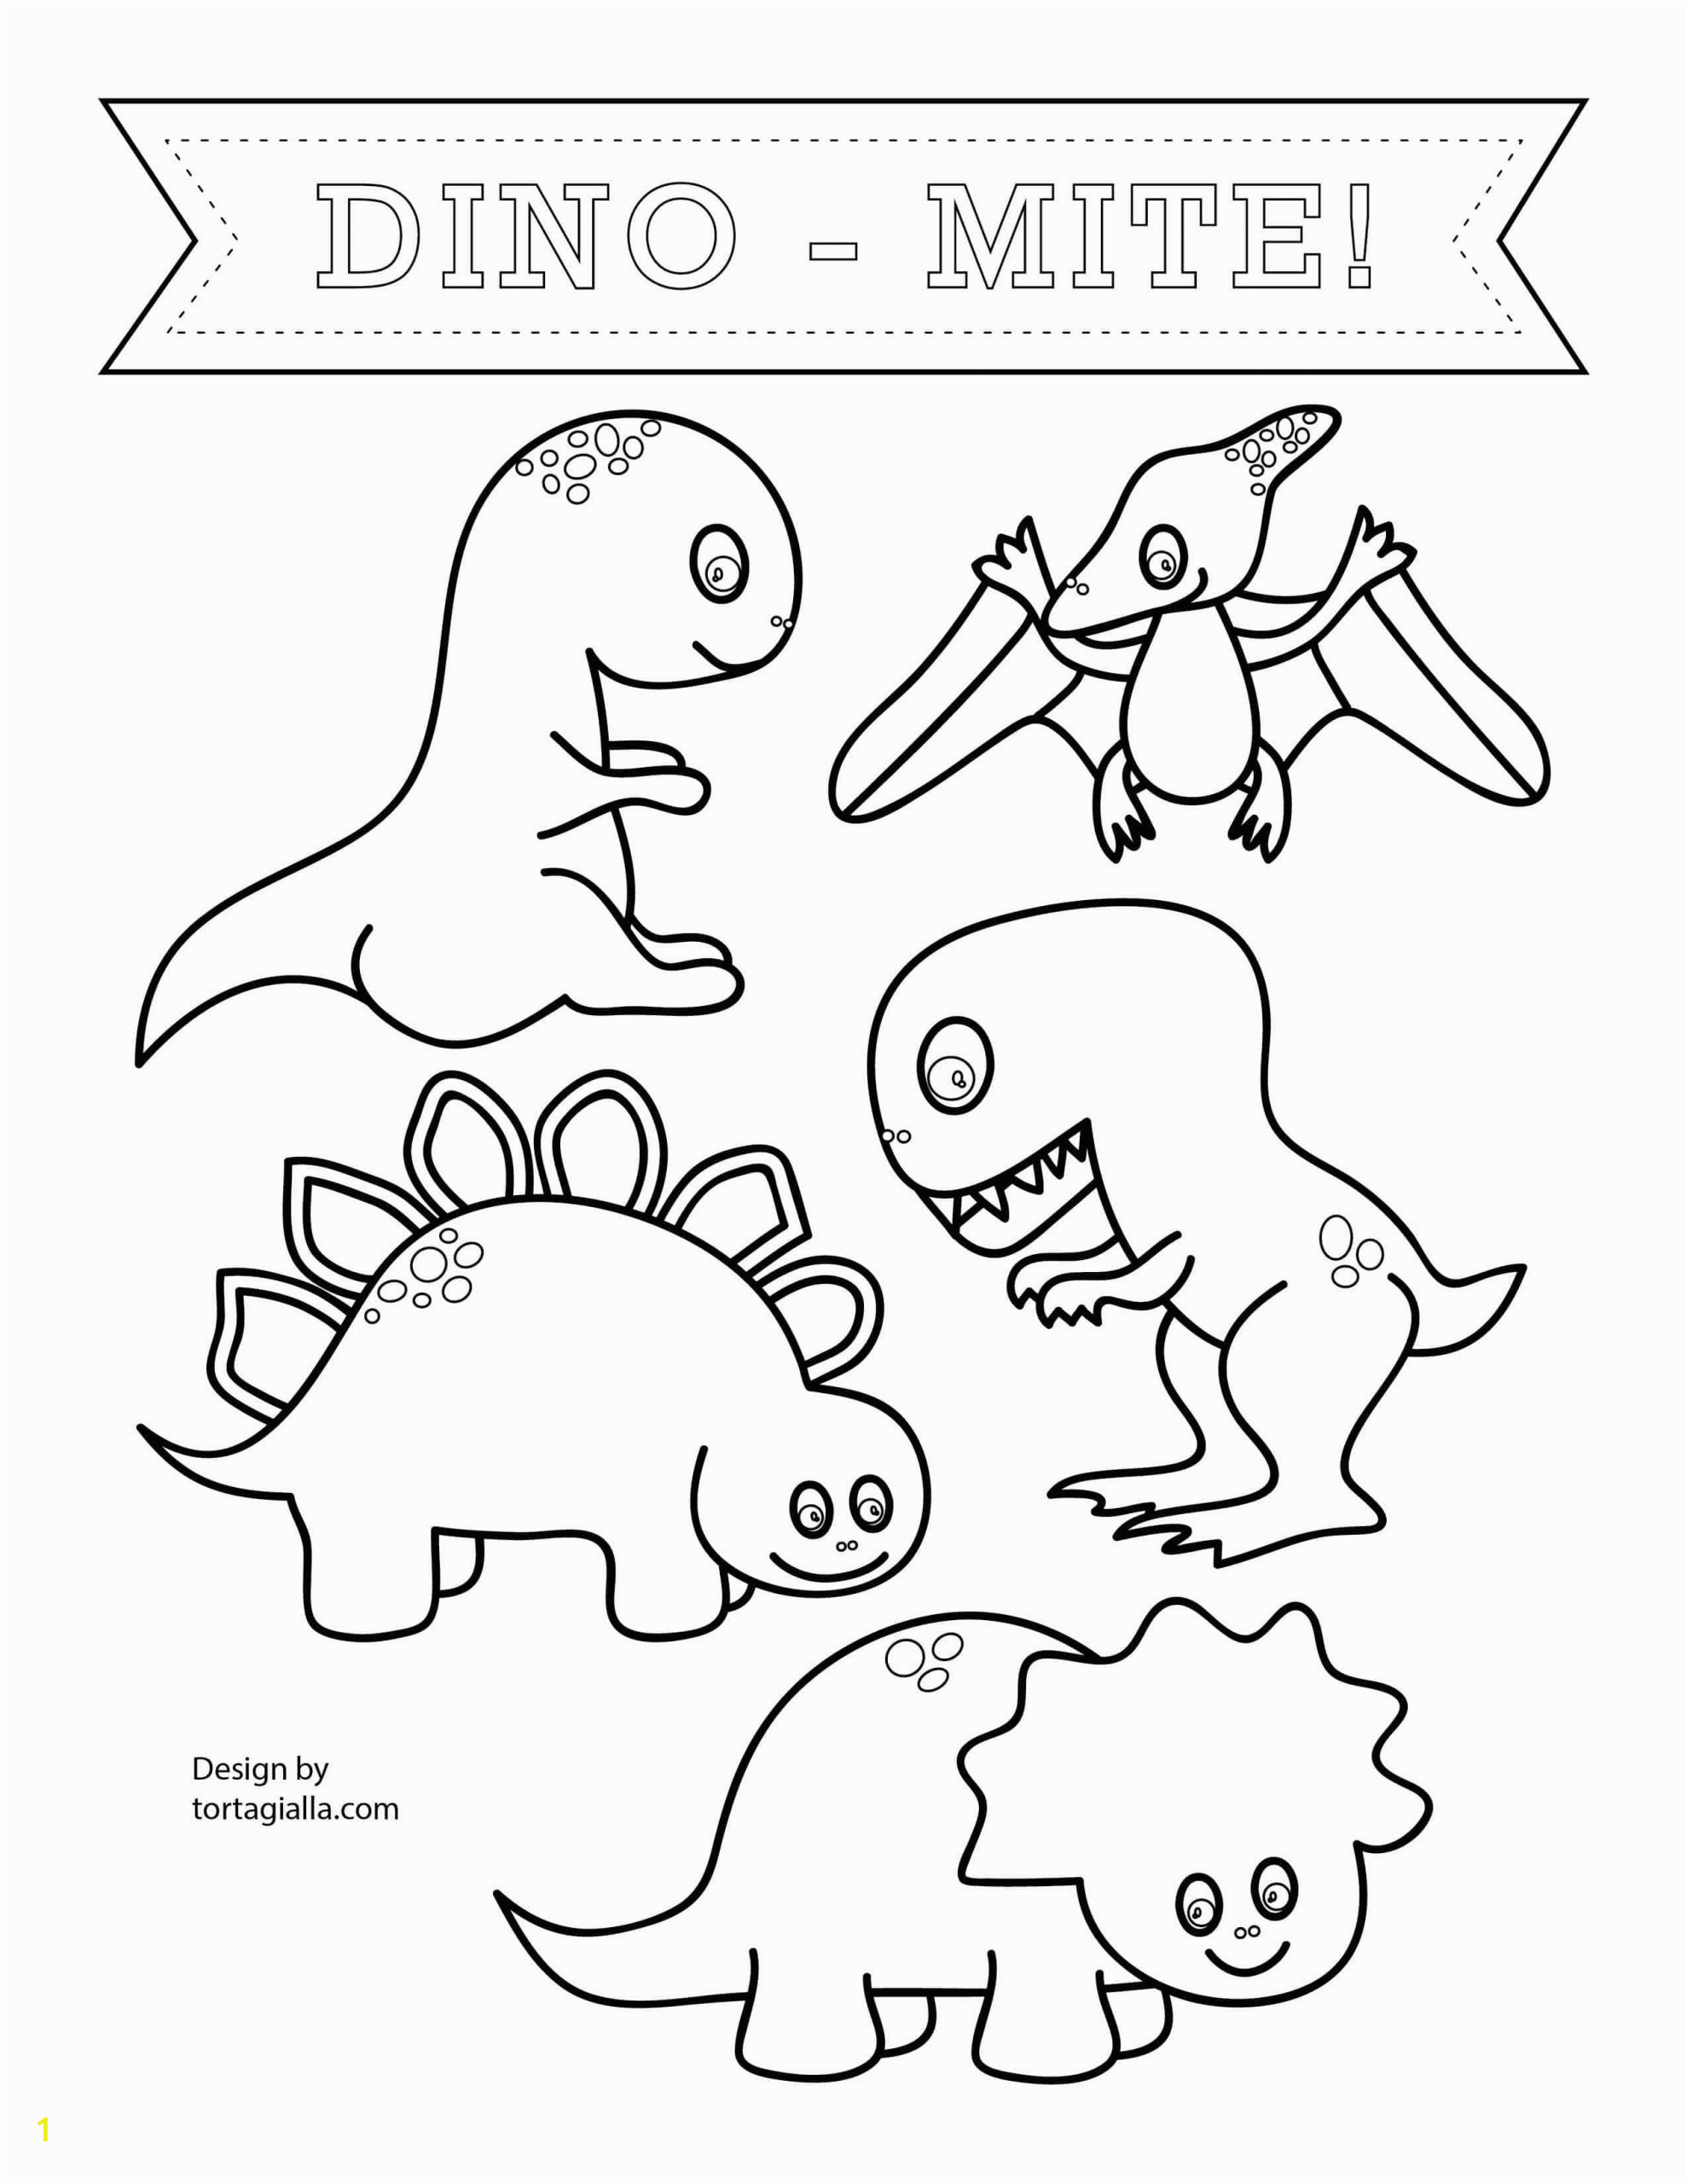 simple dinosaur coloring pages luxury coloring coloring pages printable dinosaur people spring of simple dinosaur coloring pages scaled